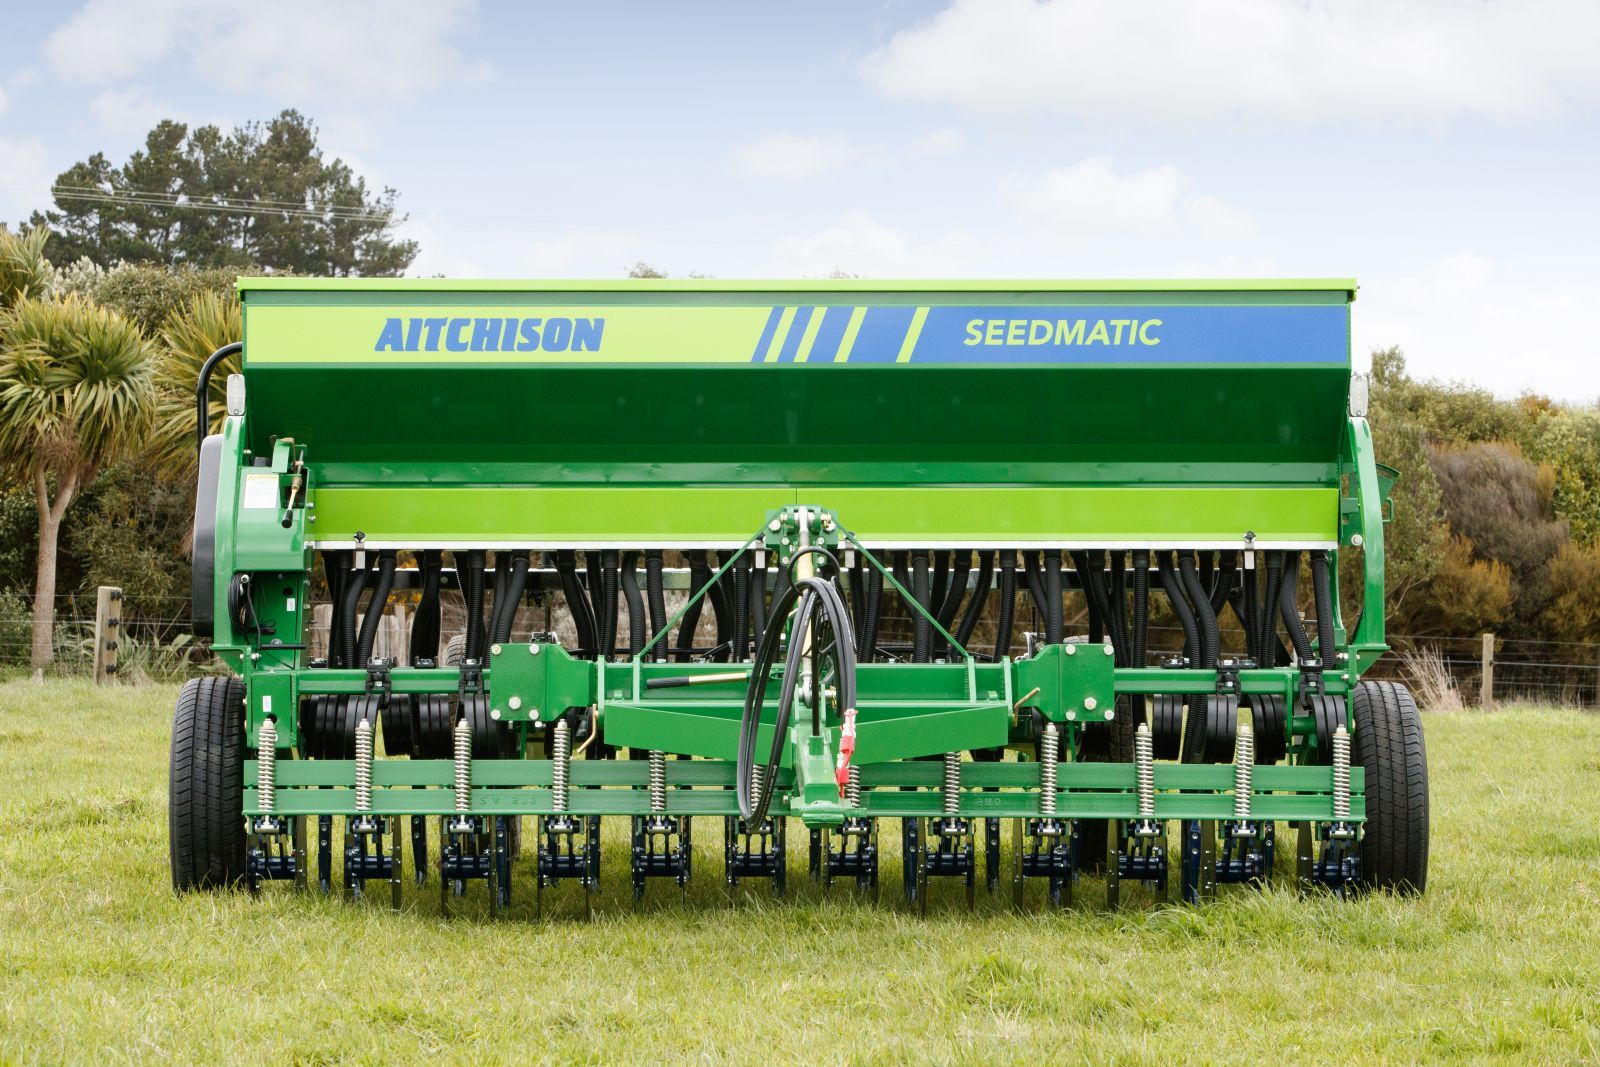 Seedmatic seed drills for direct drill demos